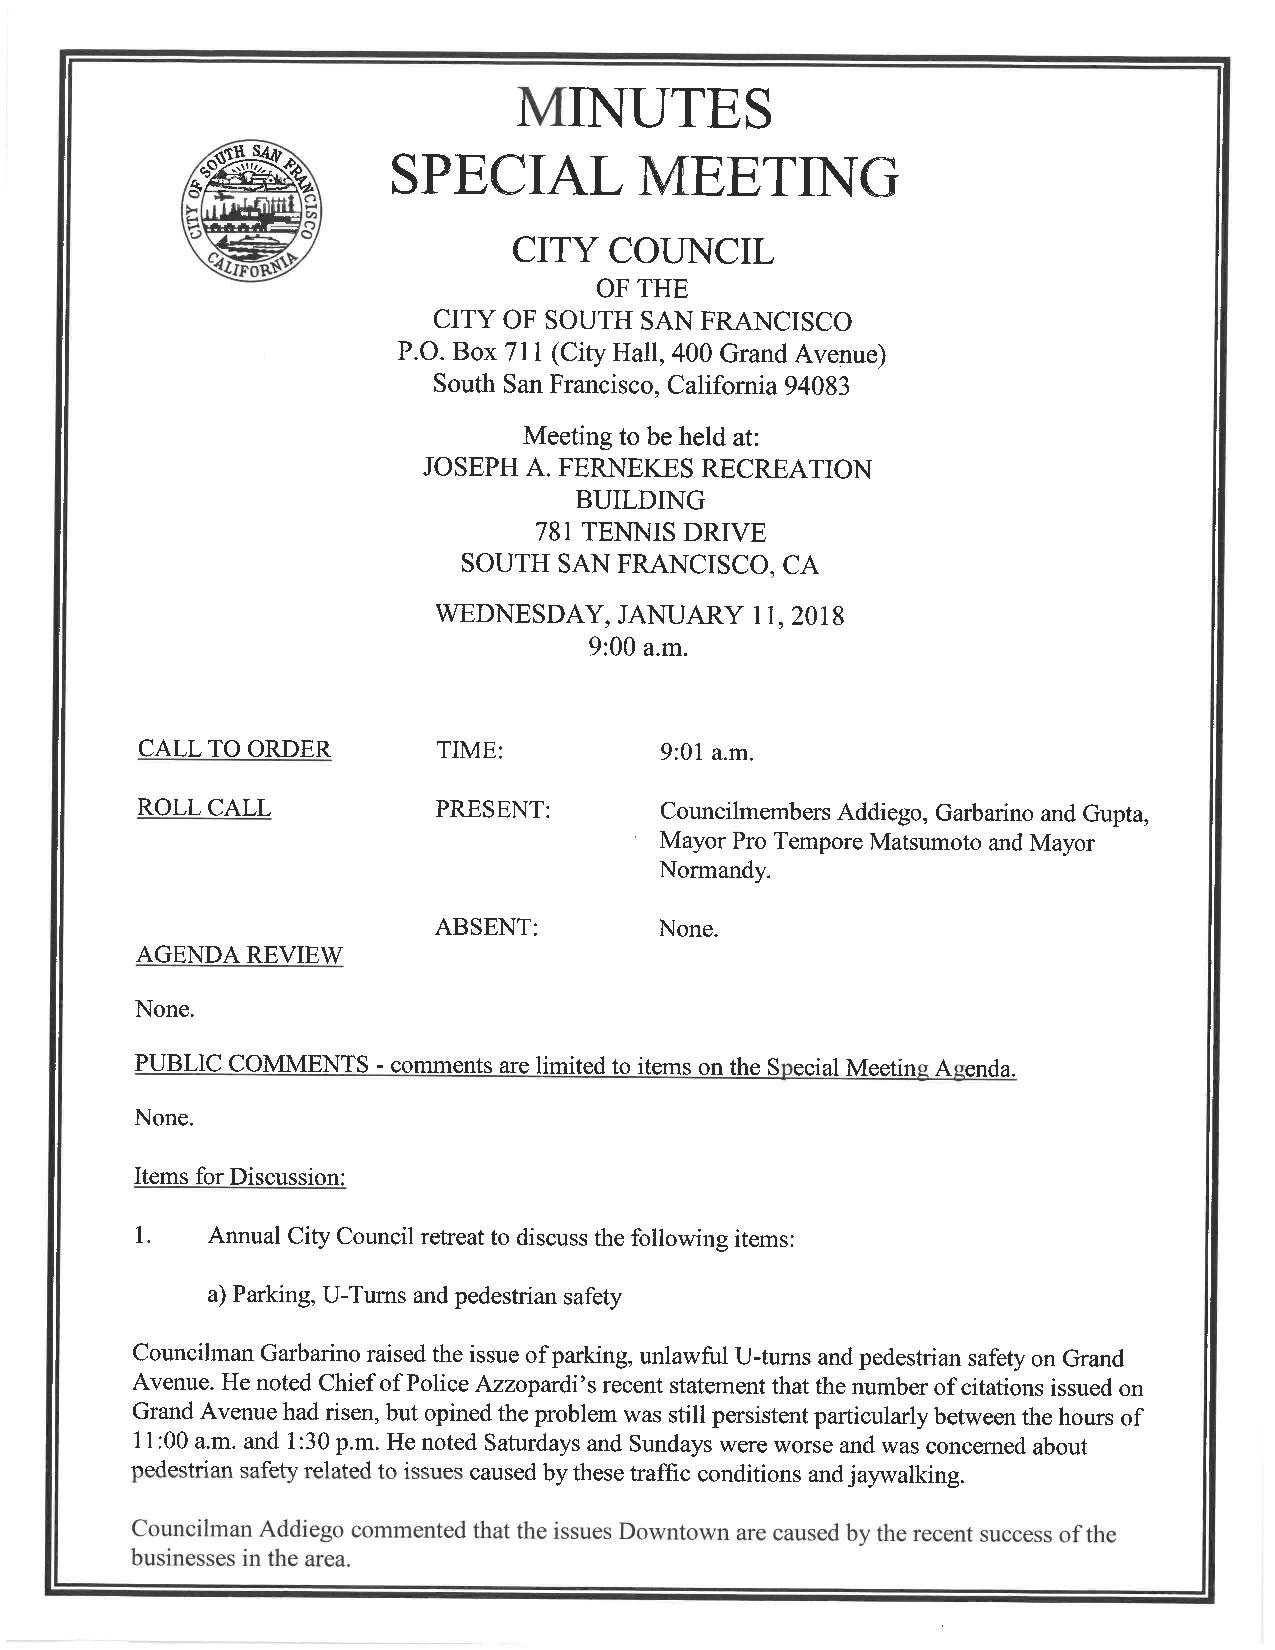 City Council Special Meeting 'Retreat' January 11, 2018 Minutes